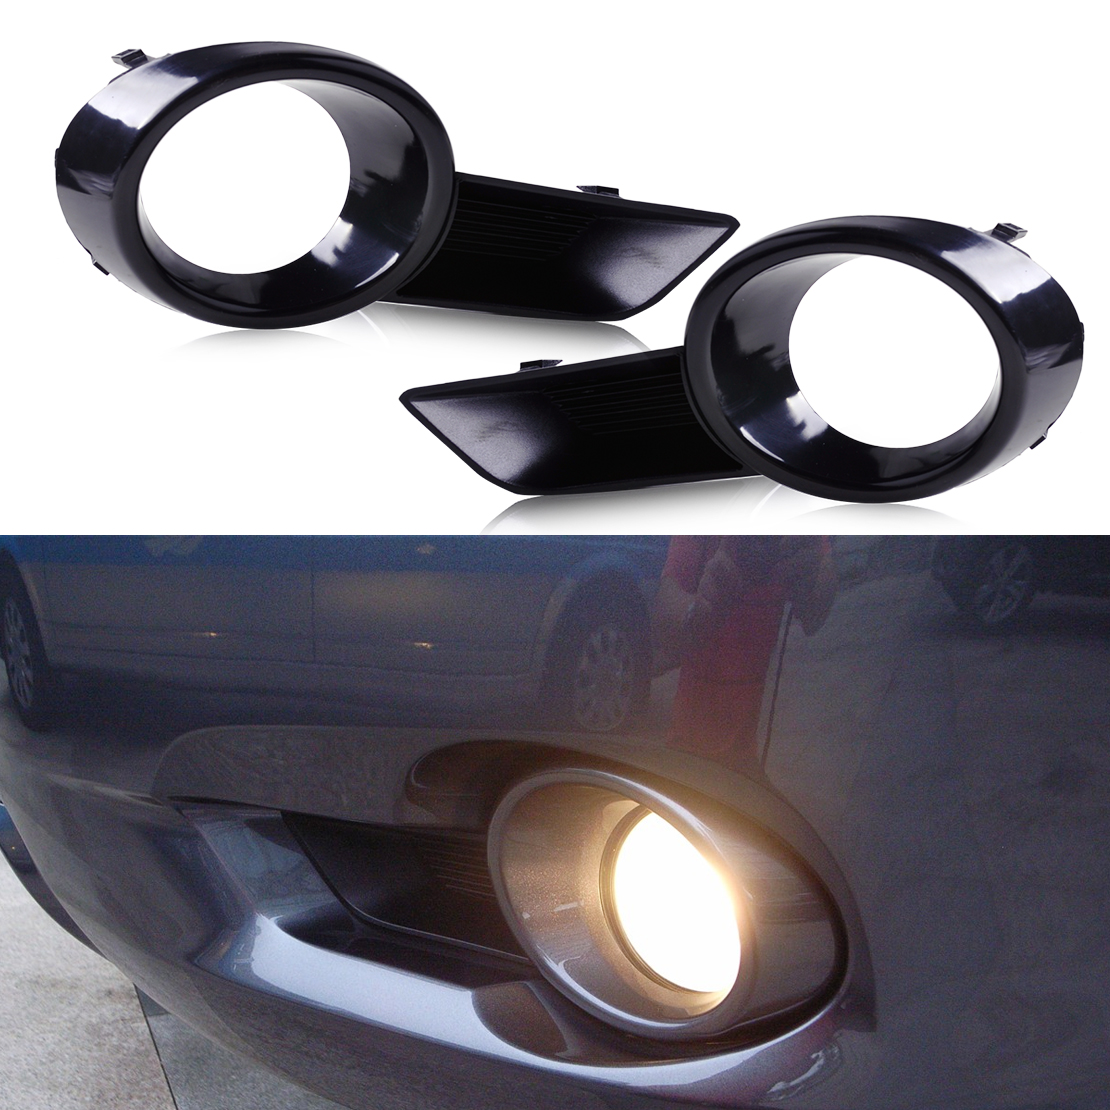 DWCX New 1 Pair Left & Right Black Front Bumper Fog Light Lamp Cover Grille 81481-OE020 fit for Toyota Highlander 2008 2009 2010